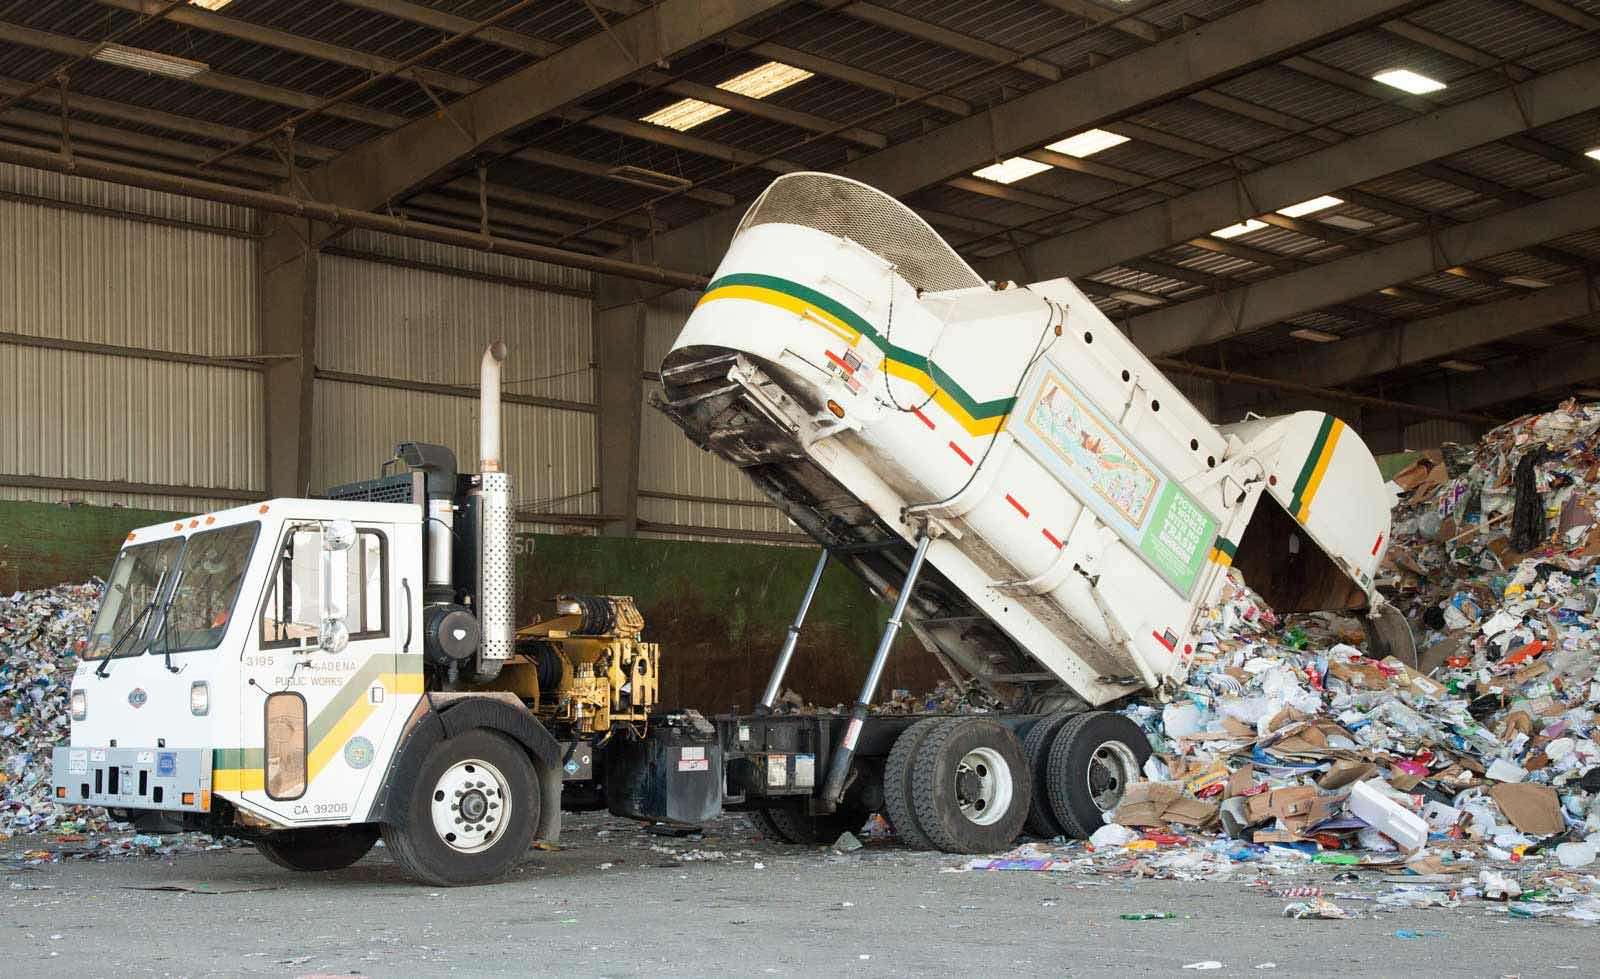 Allan Company Truck Emptying Recyclables